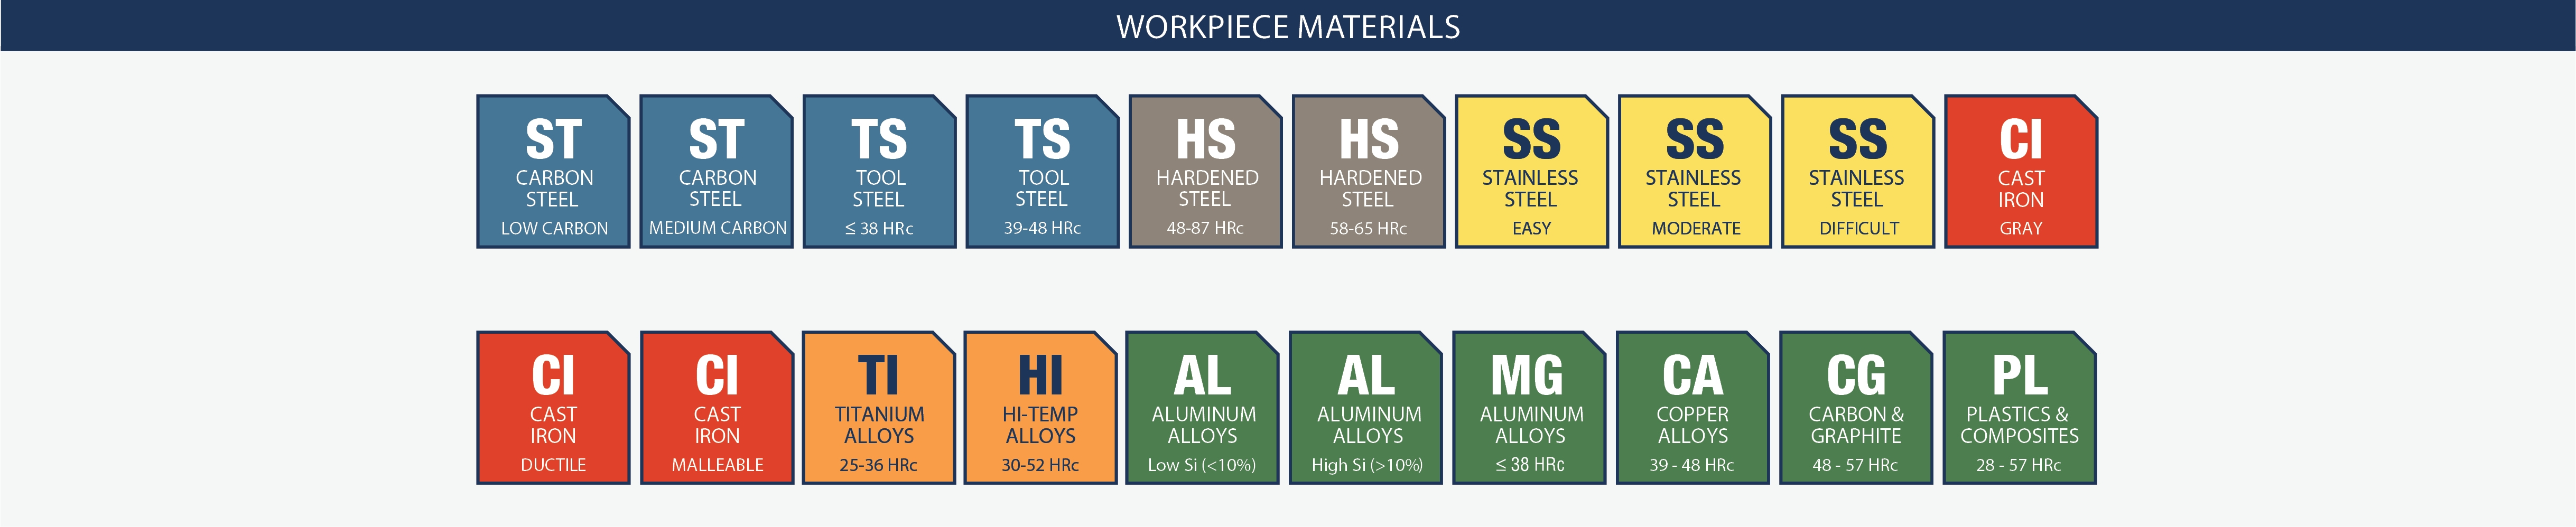 Icon Index For Workpiece Materials